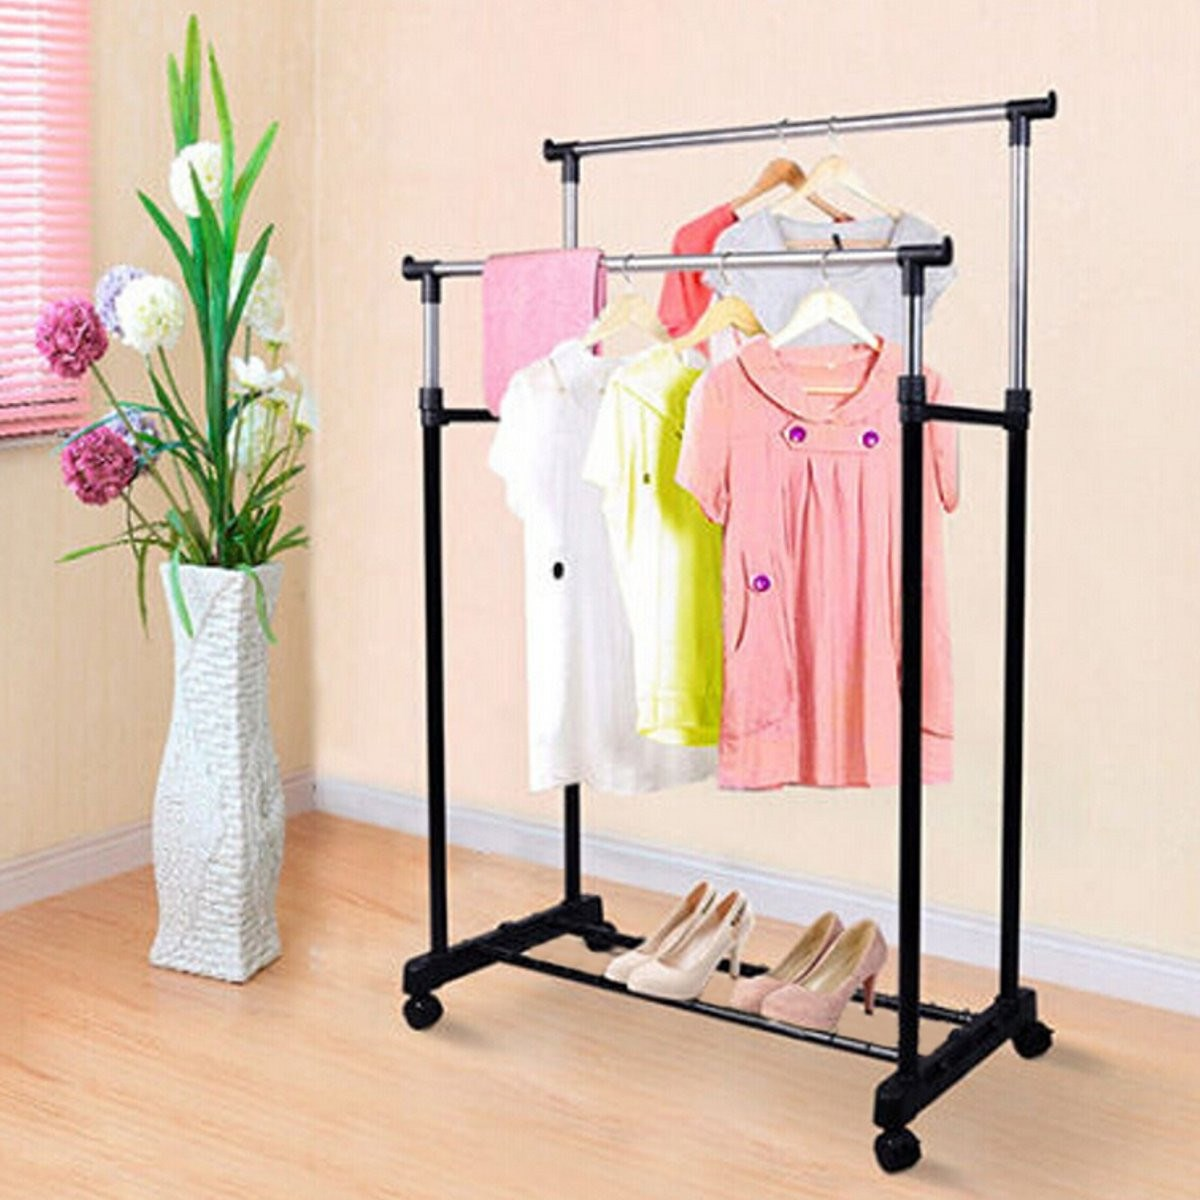 Adjustable Portable Clothes Coat Hanging Rail Stand On Wheel Double Garment Rack Home Room Storage Movable Clothes Drying Rack(China (Mainland))